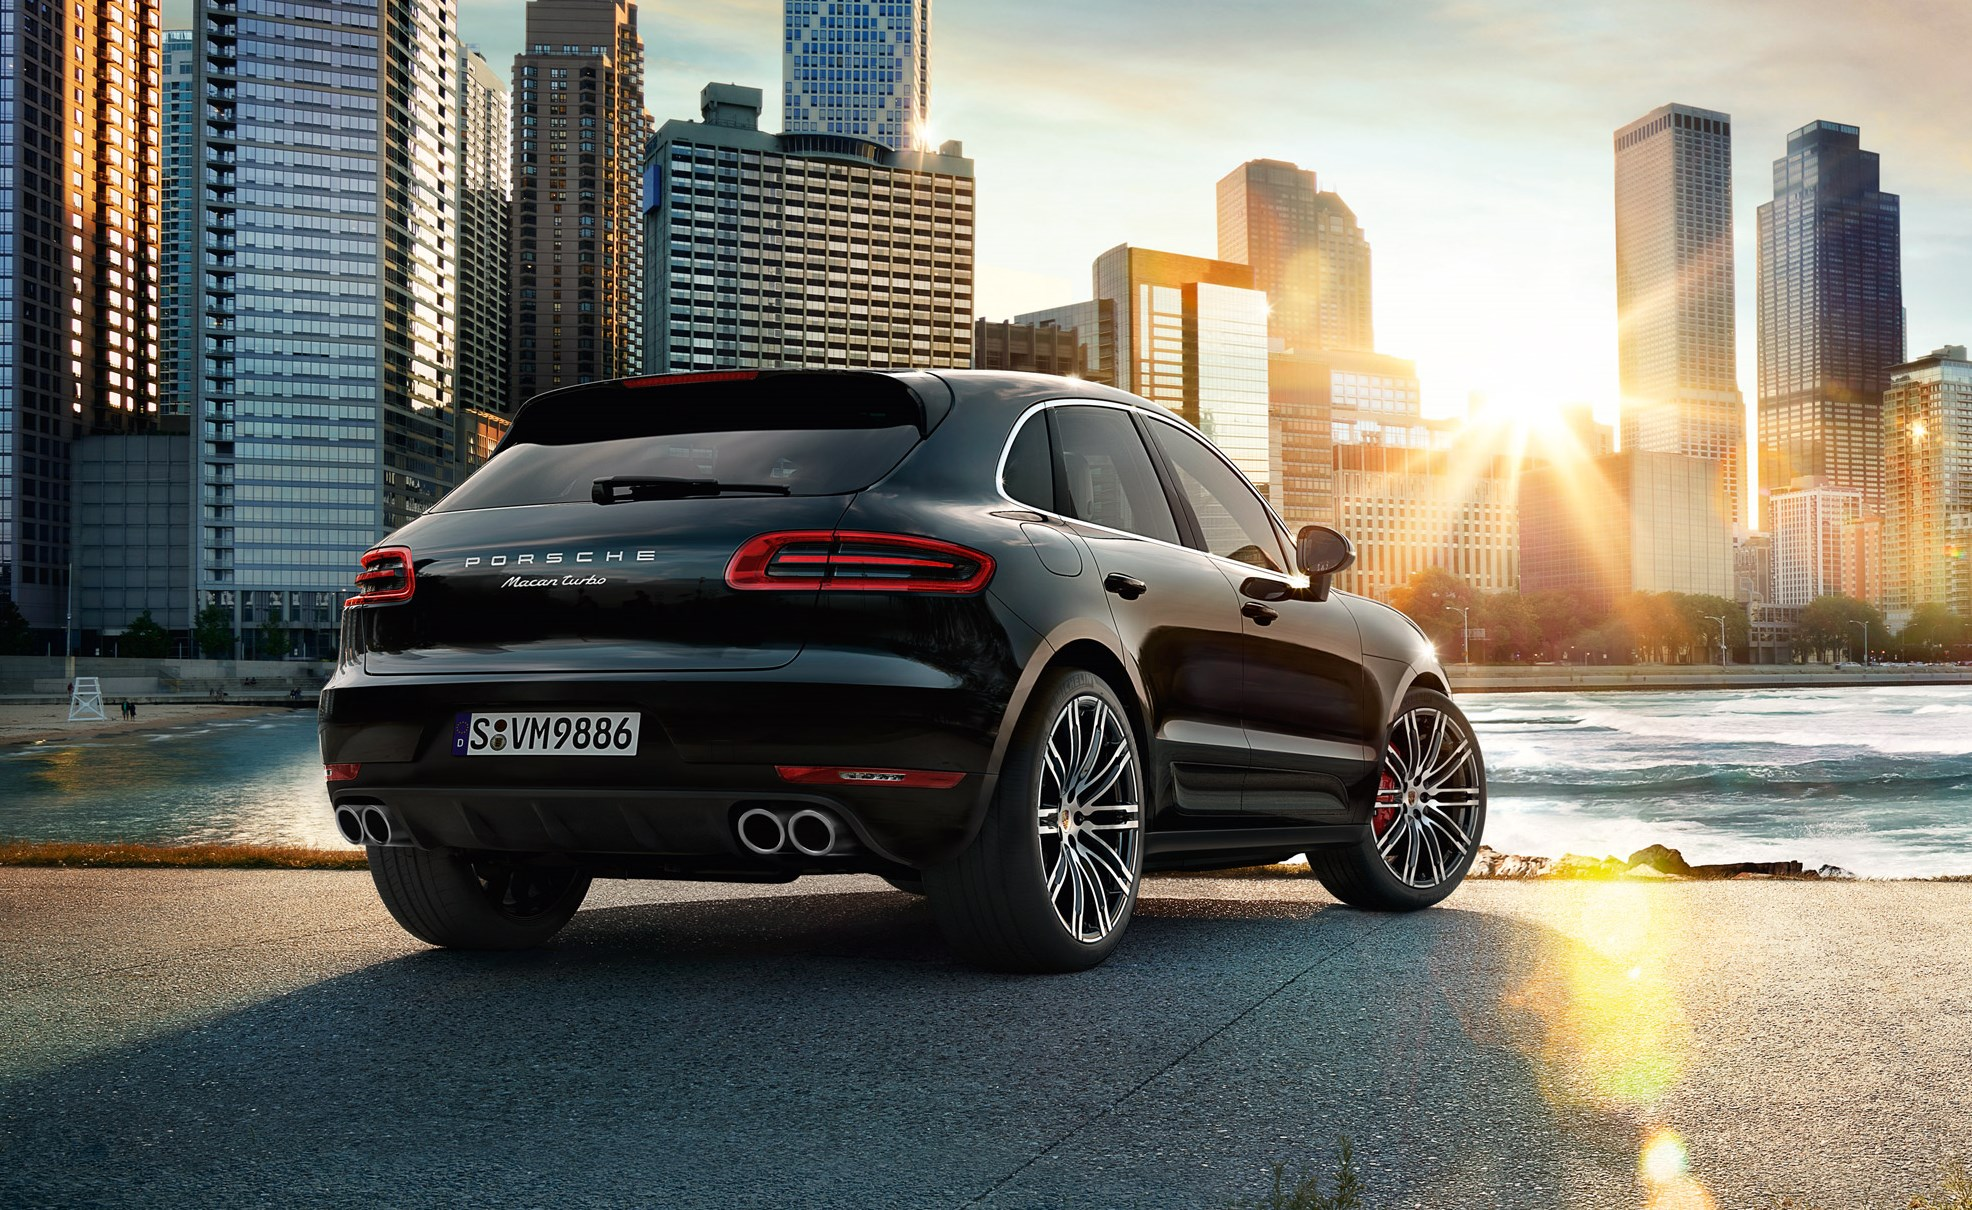 porsche presenta el nuevo macan turbo performance package 40 cv m s automotiva. Black Bedroom Furniture Sets. Home Design Ideas